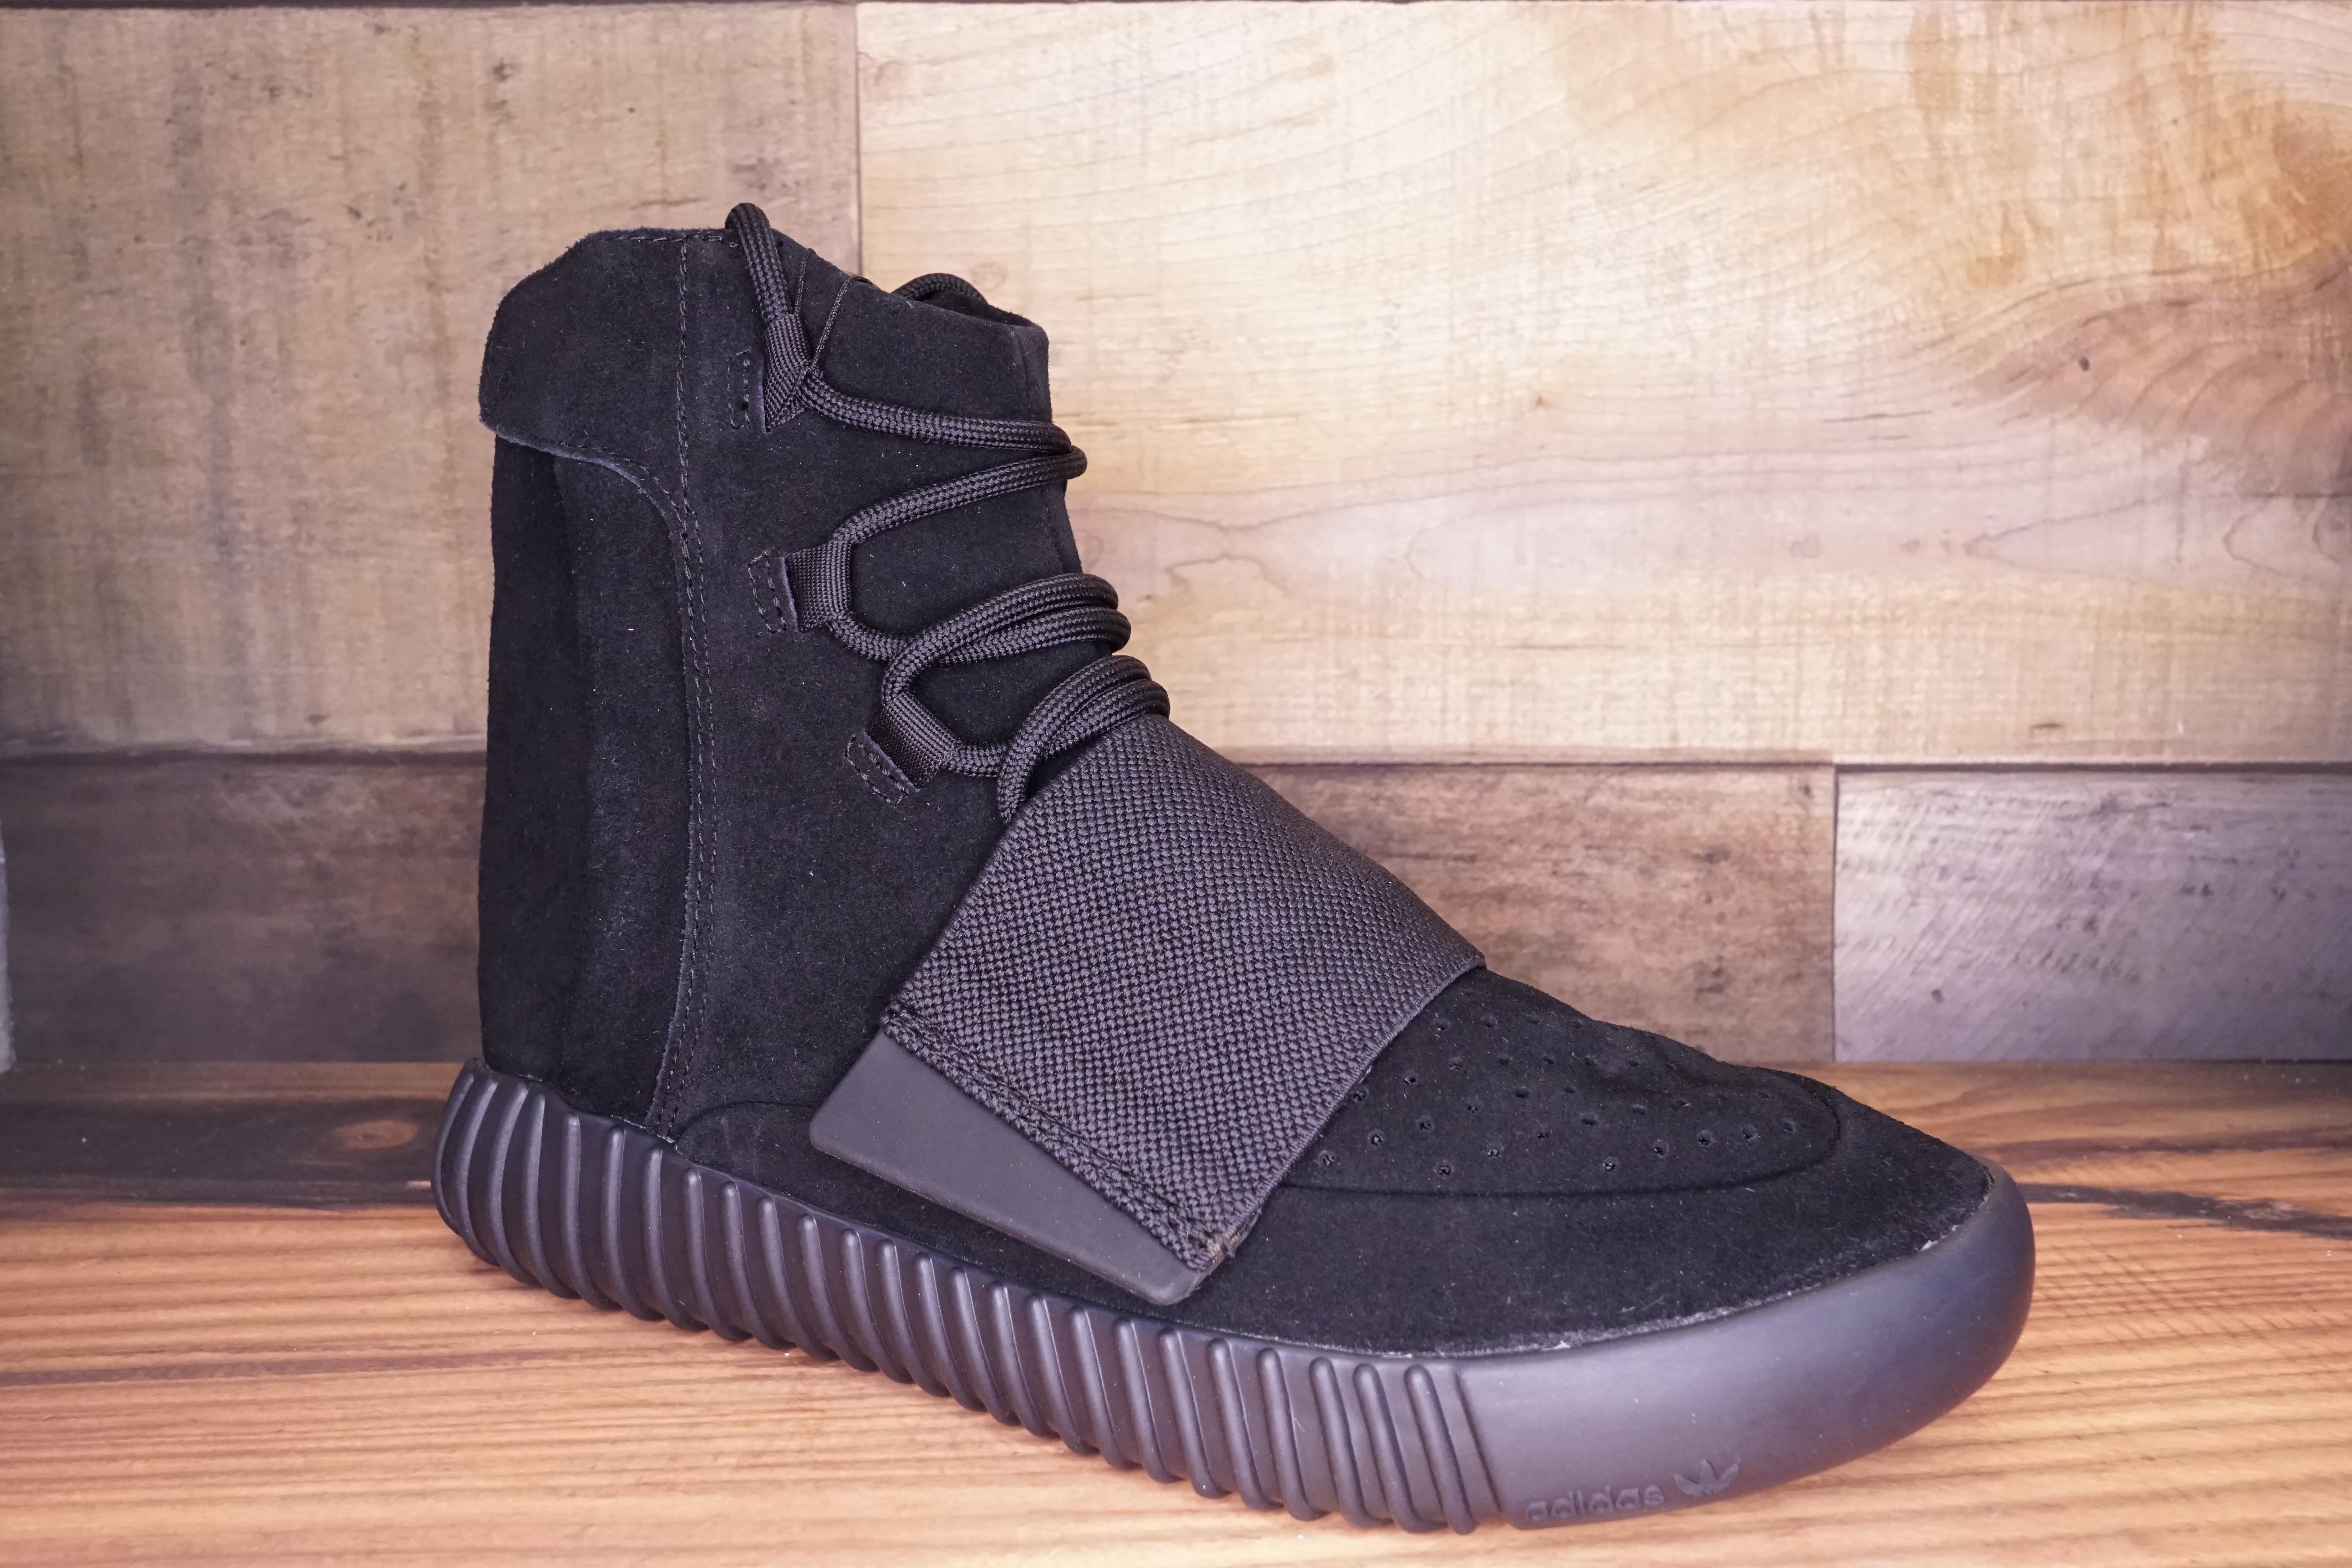 Adidas-Yeezy-Boost-750-Size-8-New-with-